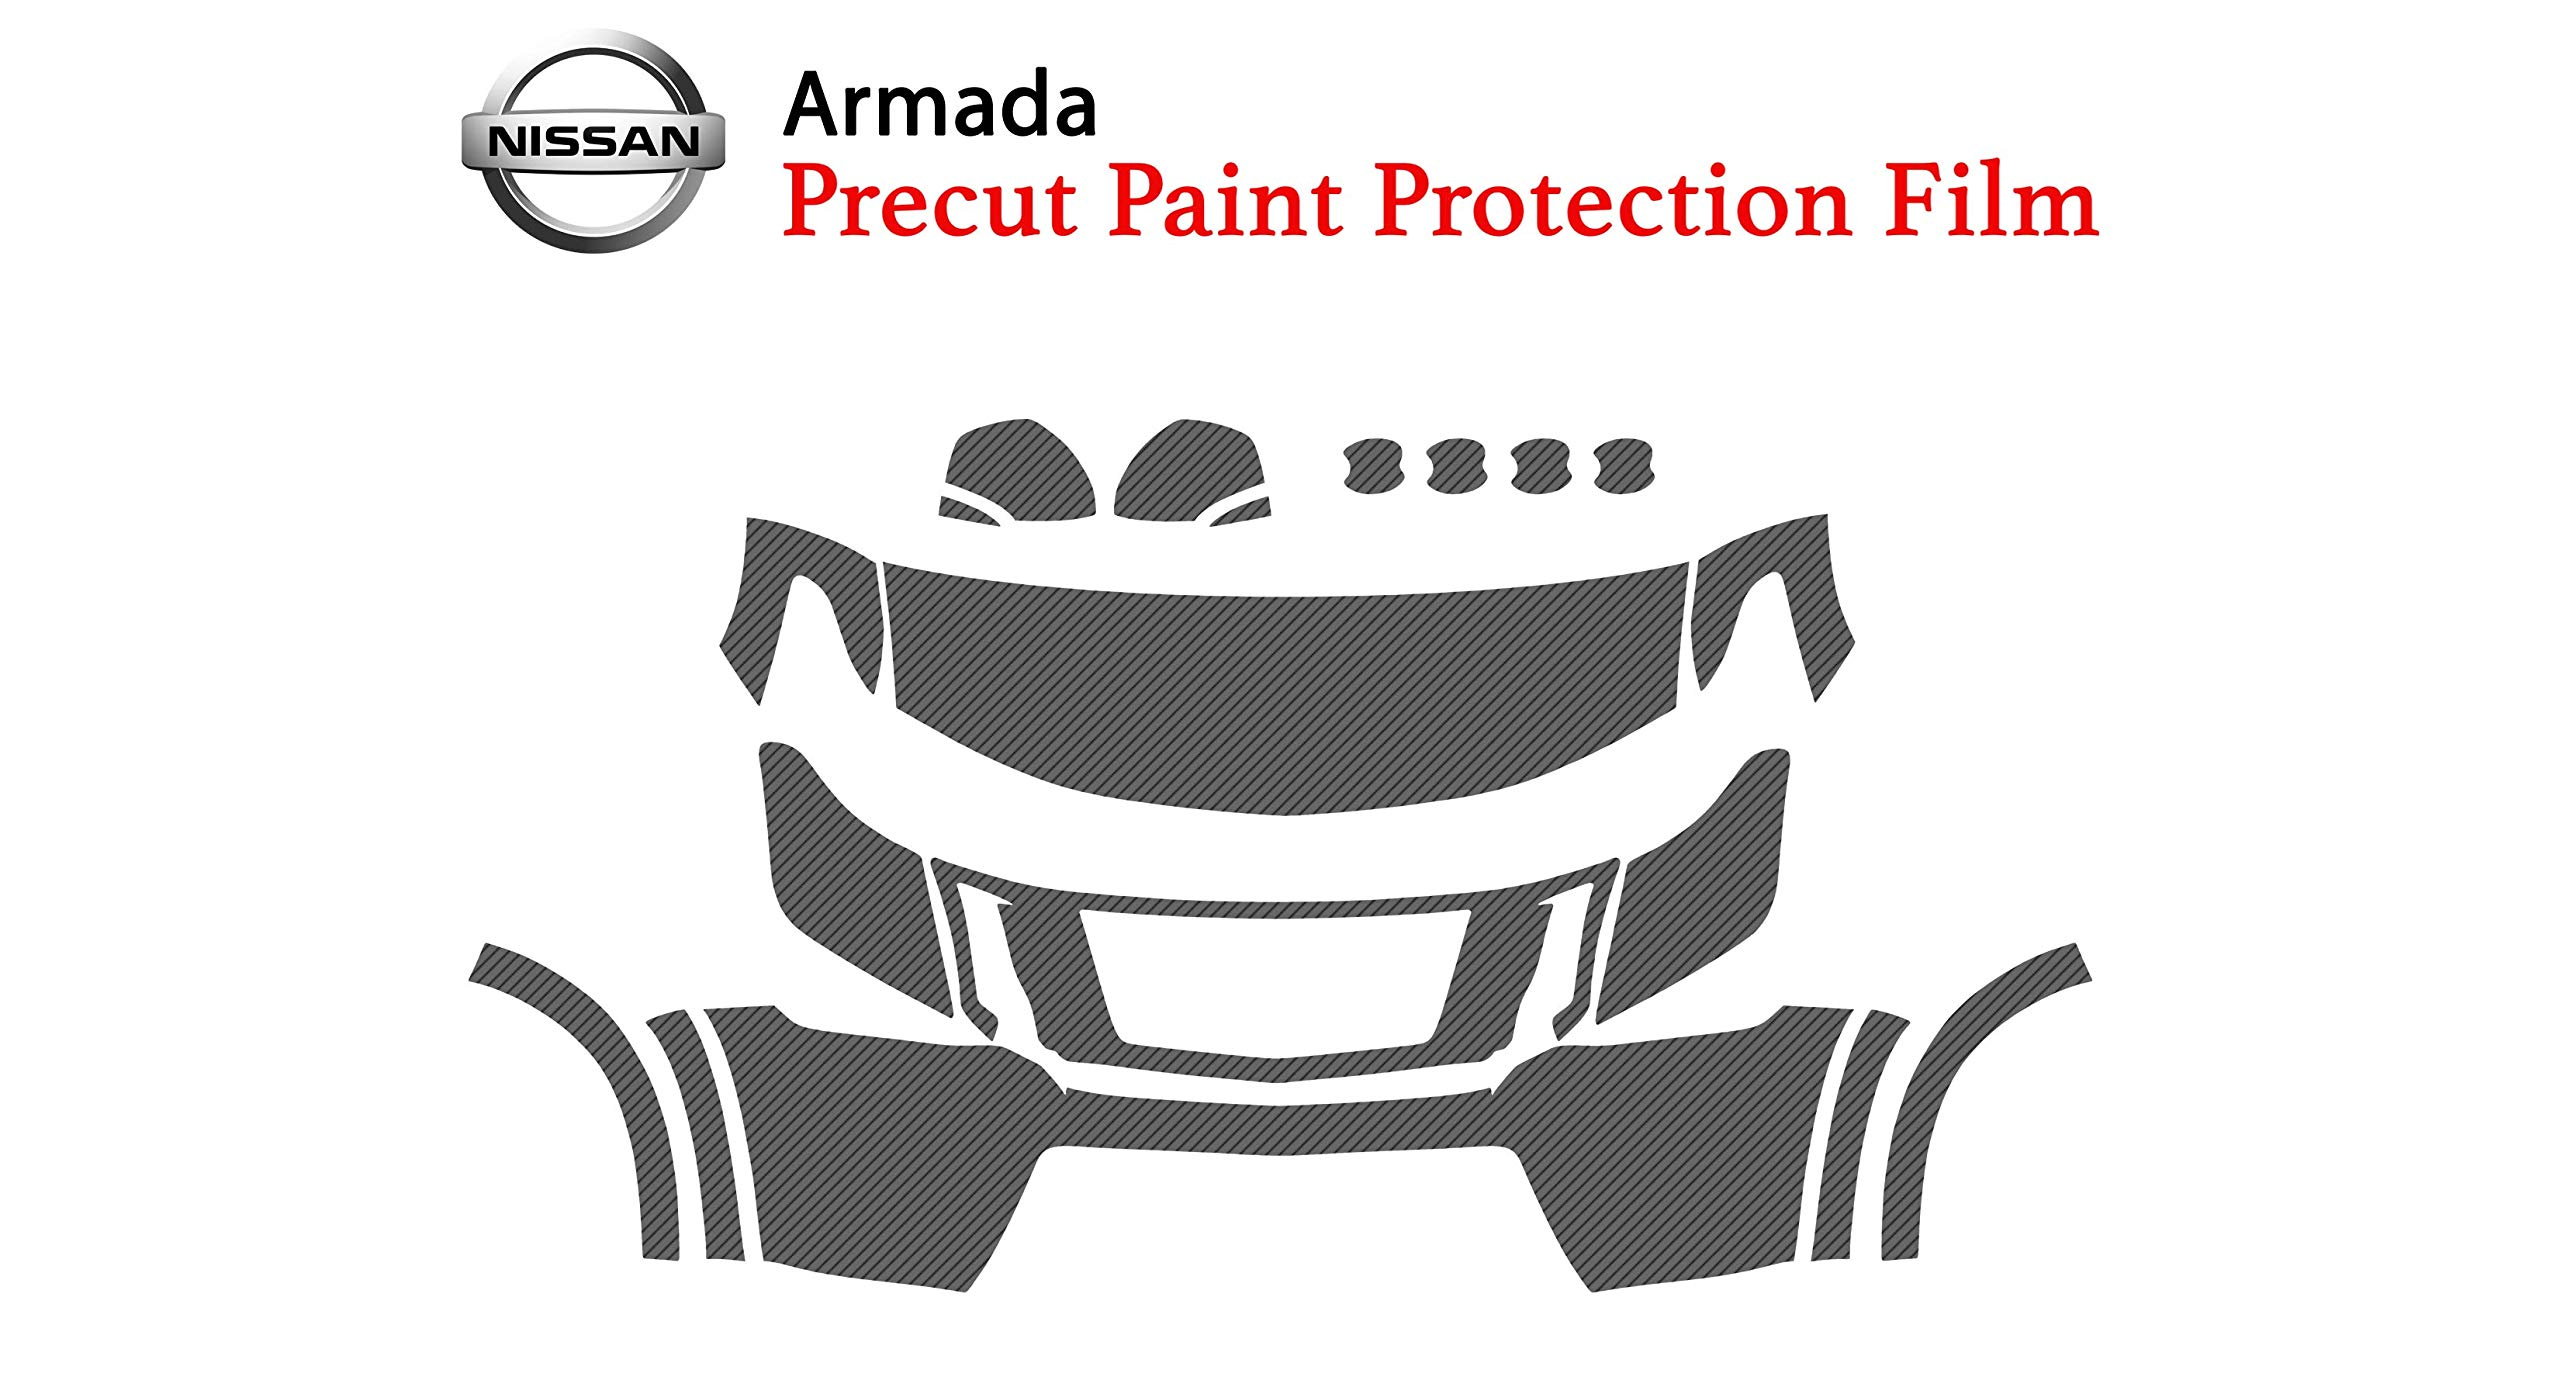 The Online Liquidator Precut Clear Bra Paint Protection Film Kit fits Nissan Armada 2017-2019 - Full Front Vinyl Wrap Surface Safeguard Armor Cover